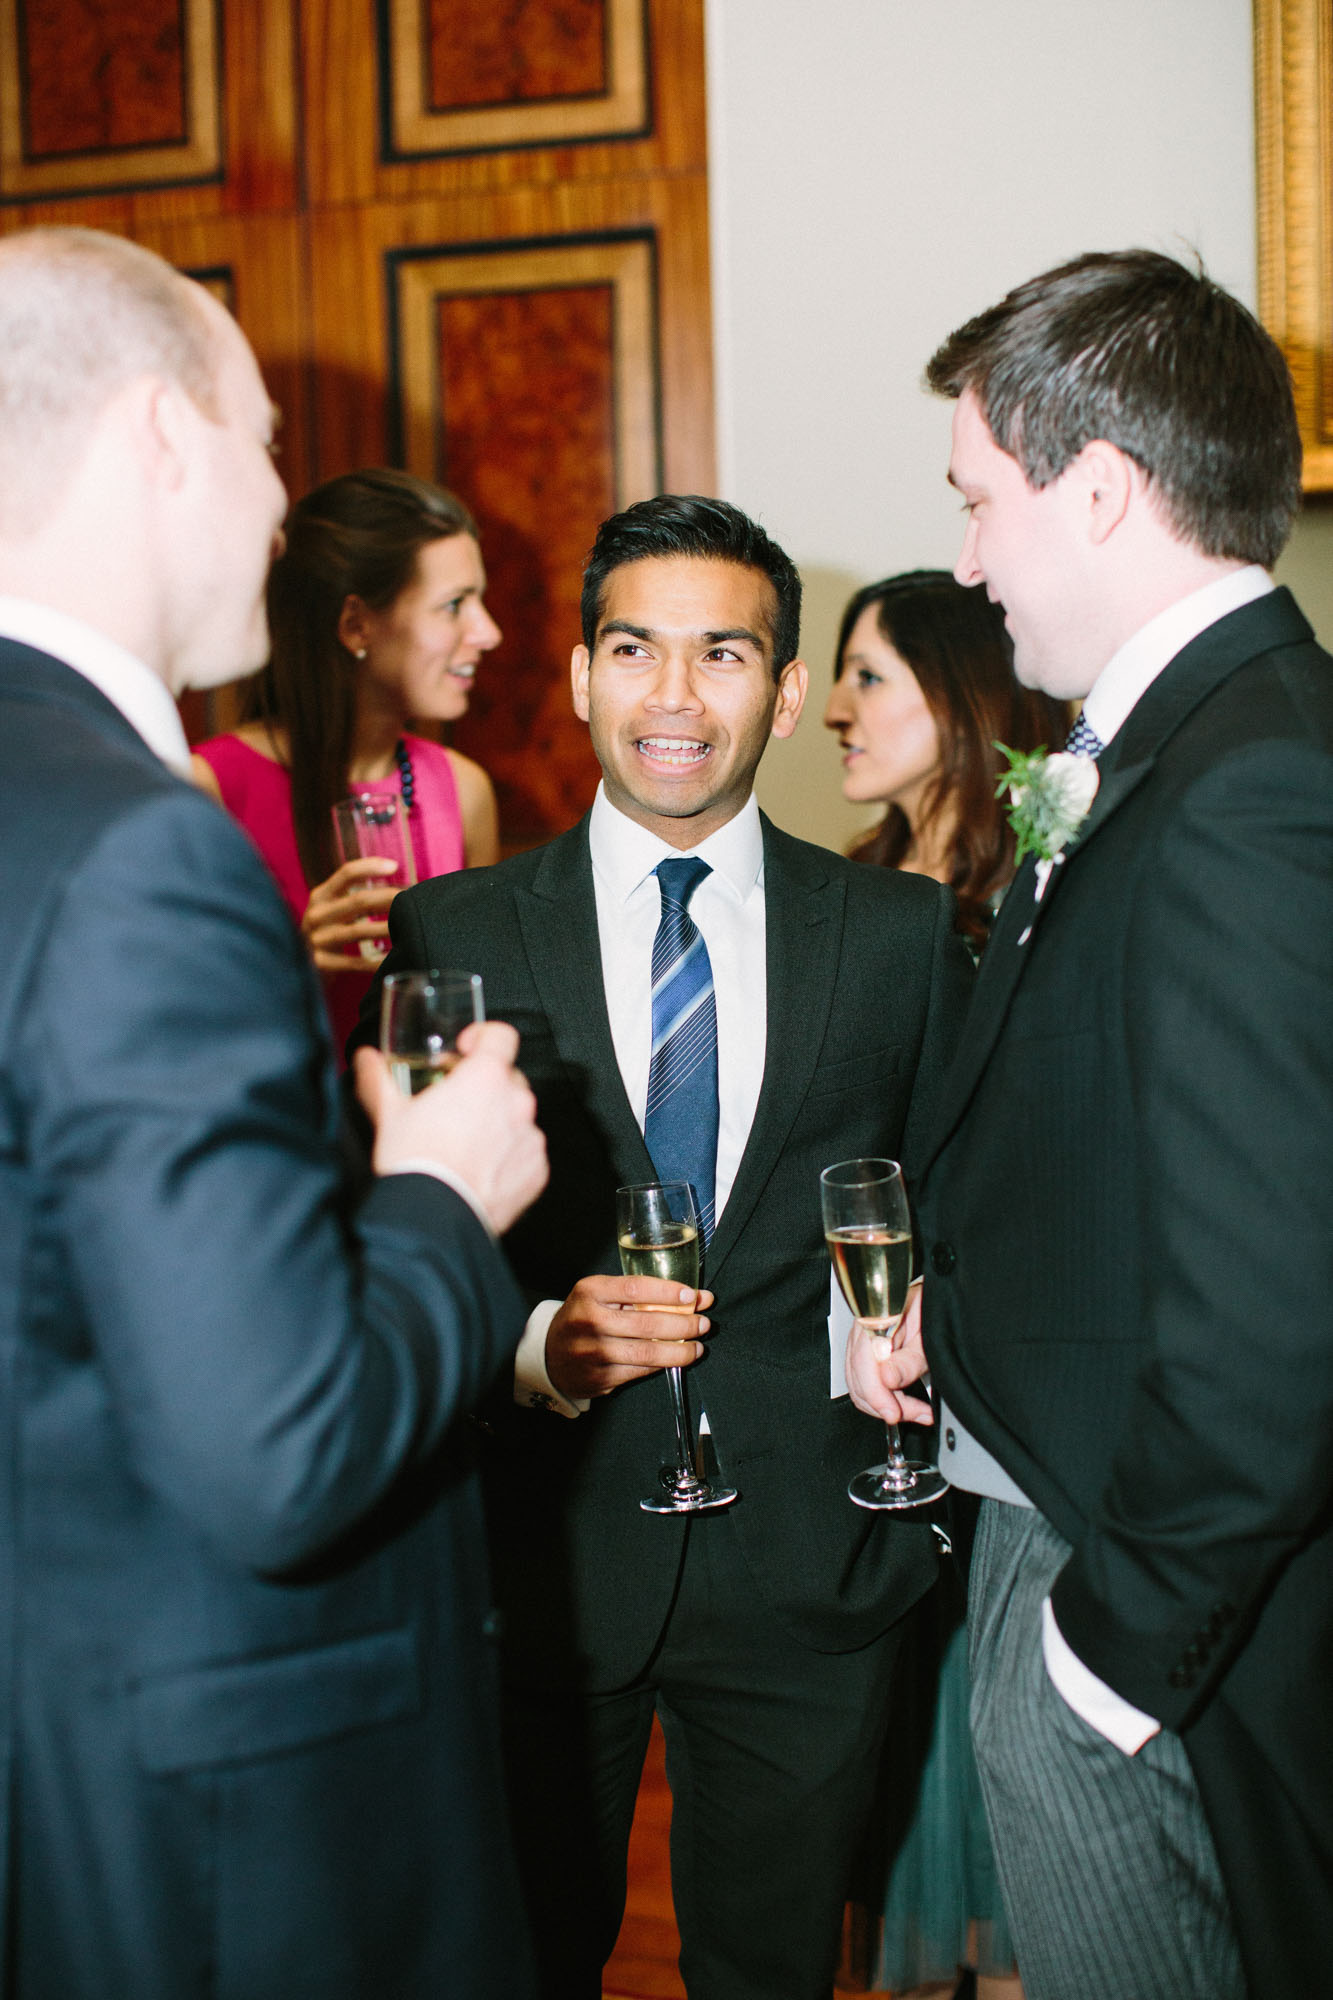 Wedding guests laughing and chatting inside Goodwood House